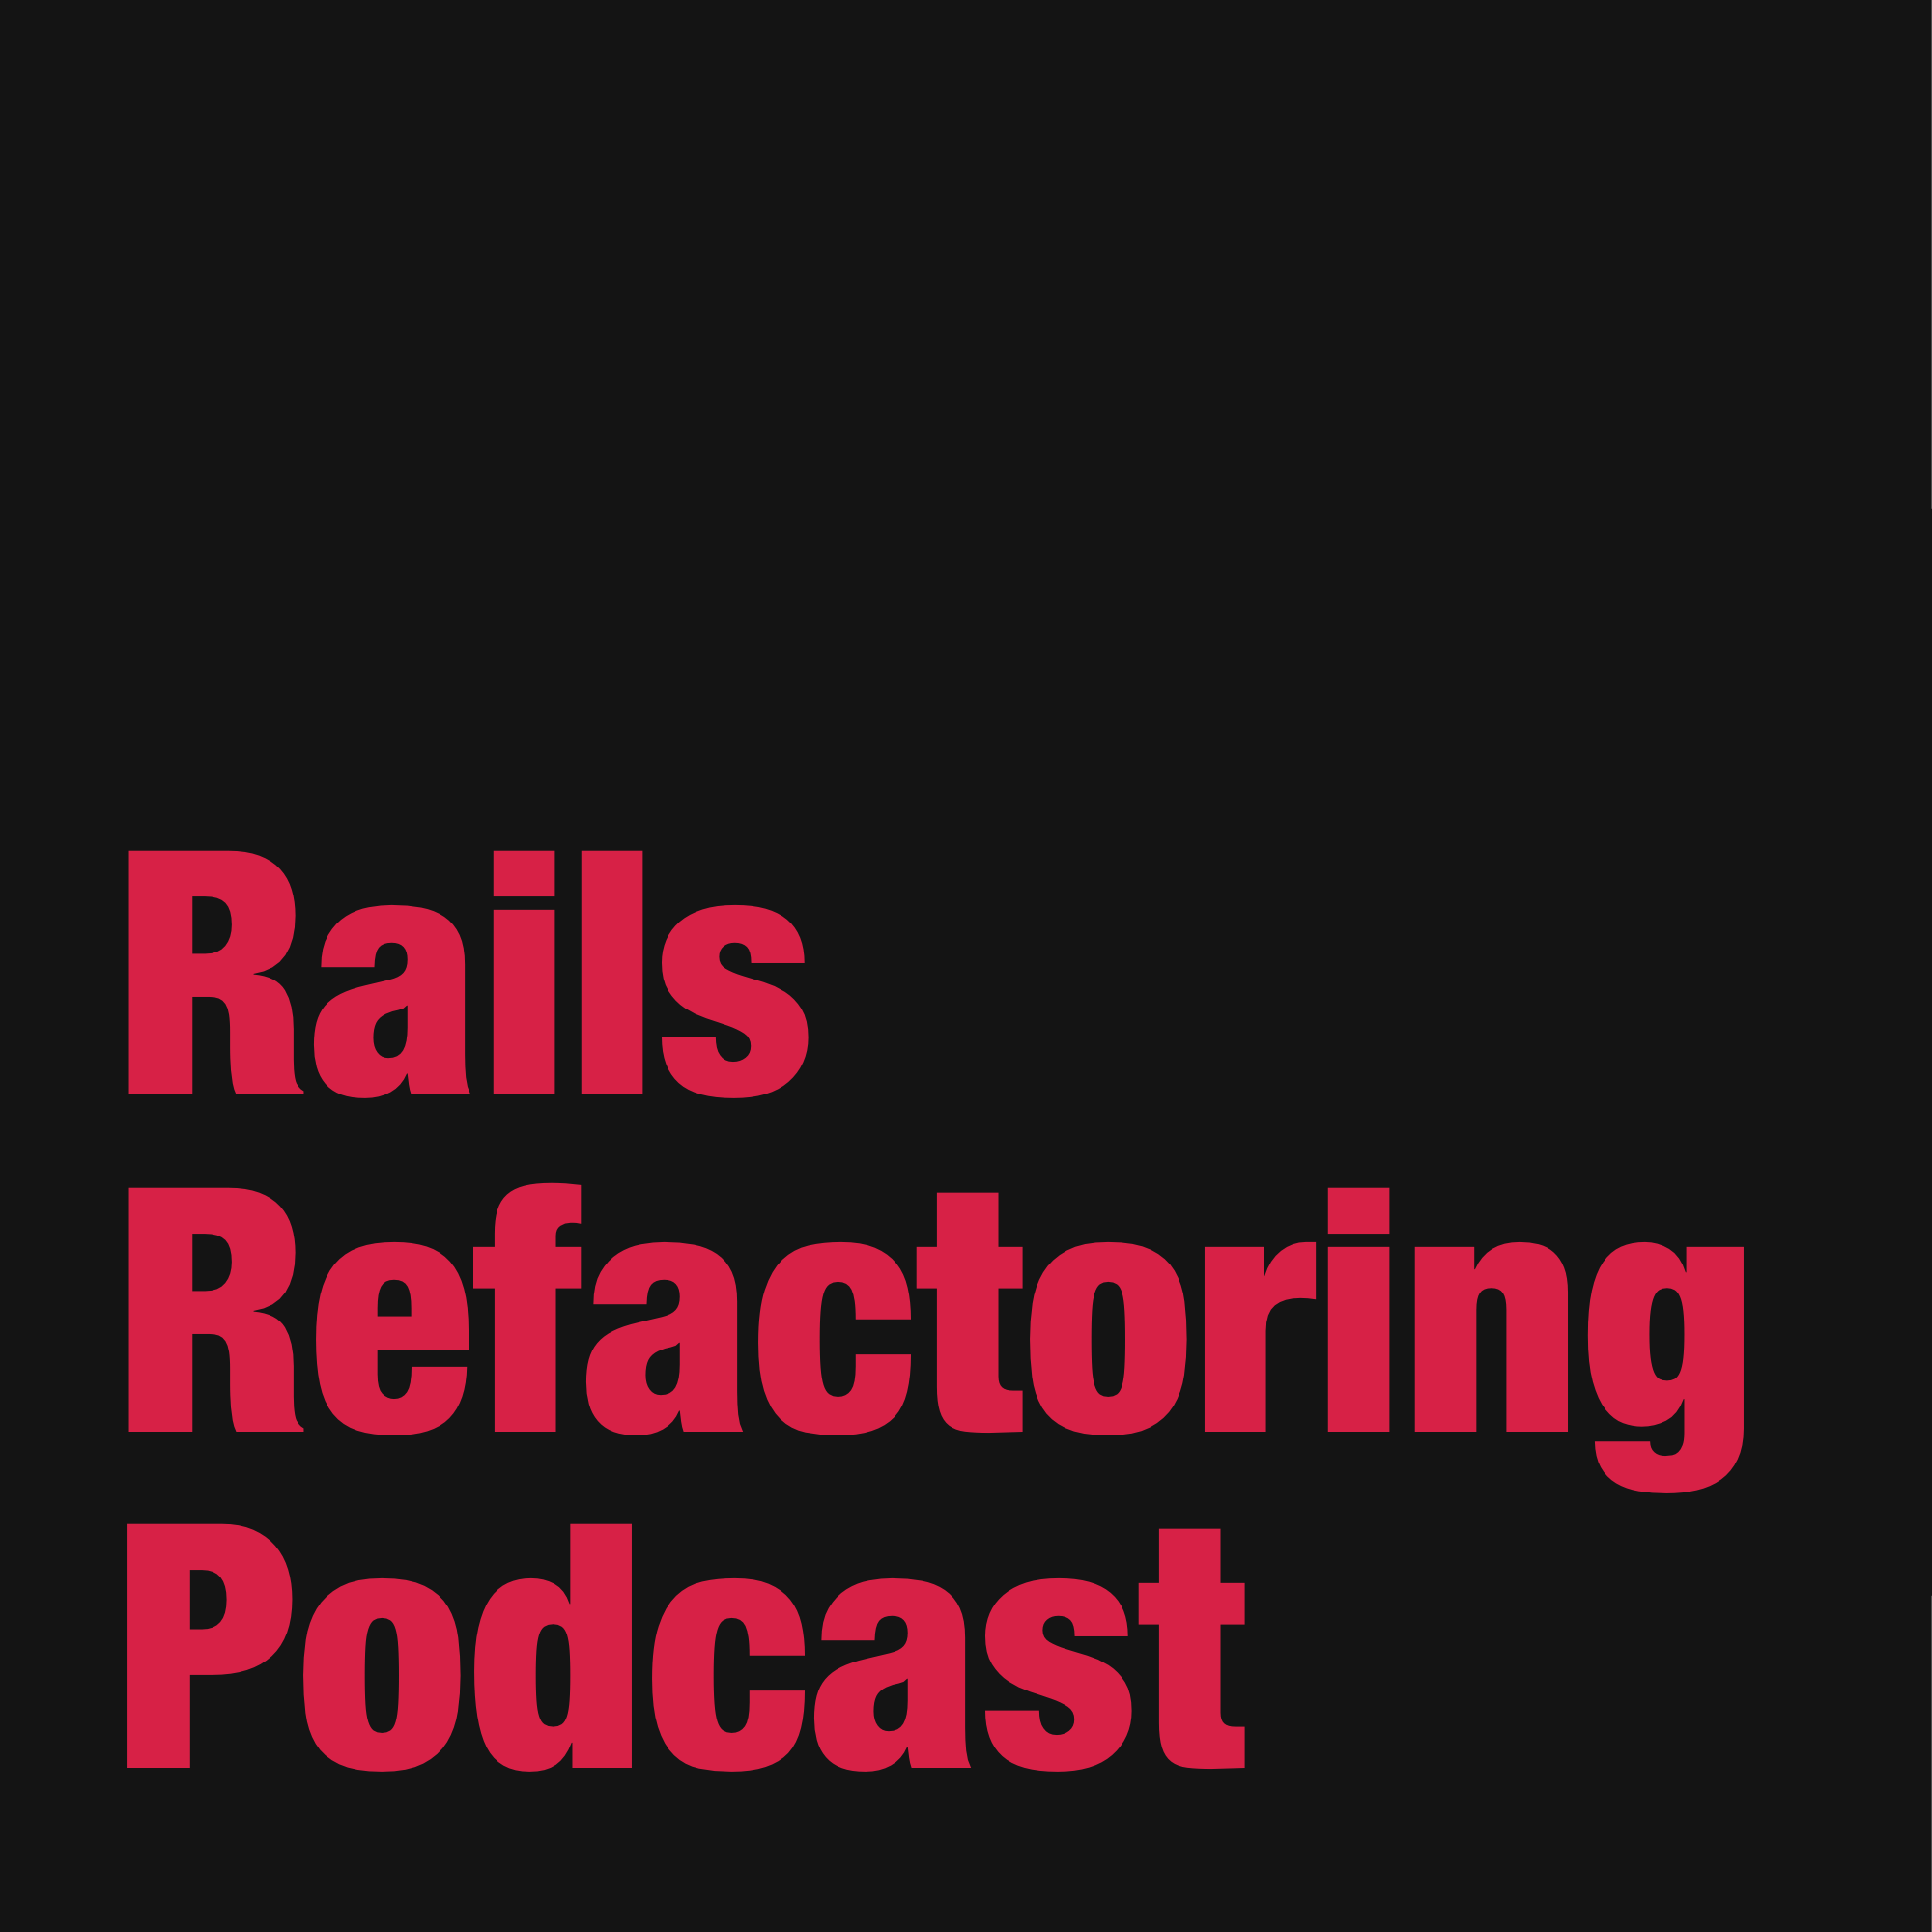 Rails Refactoring Podcast